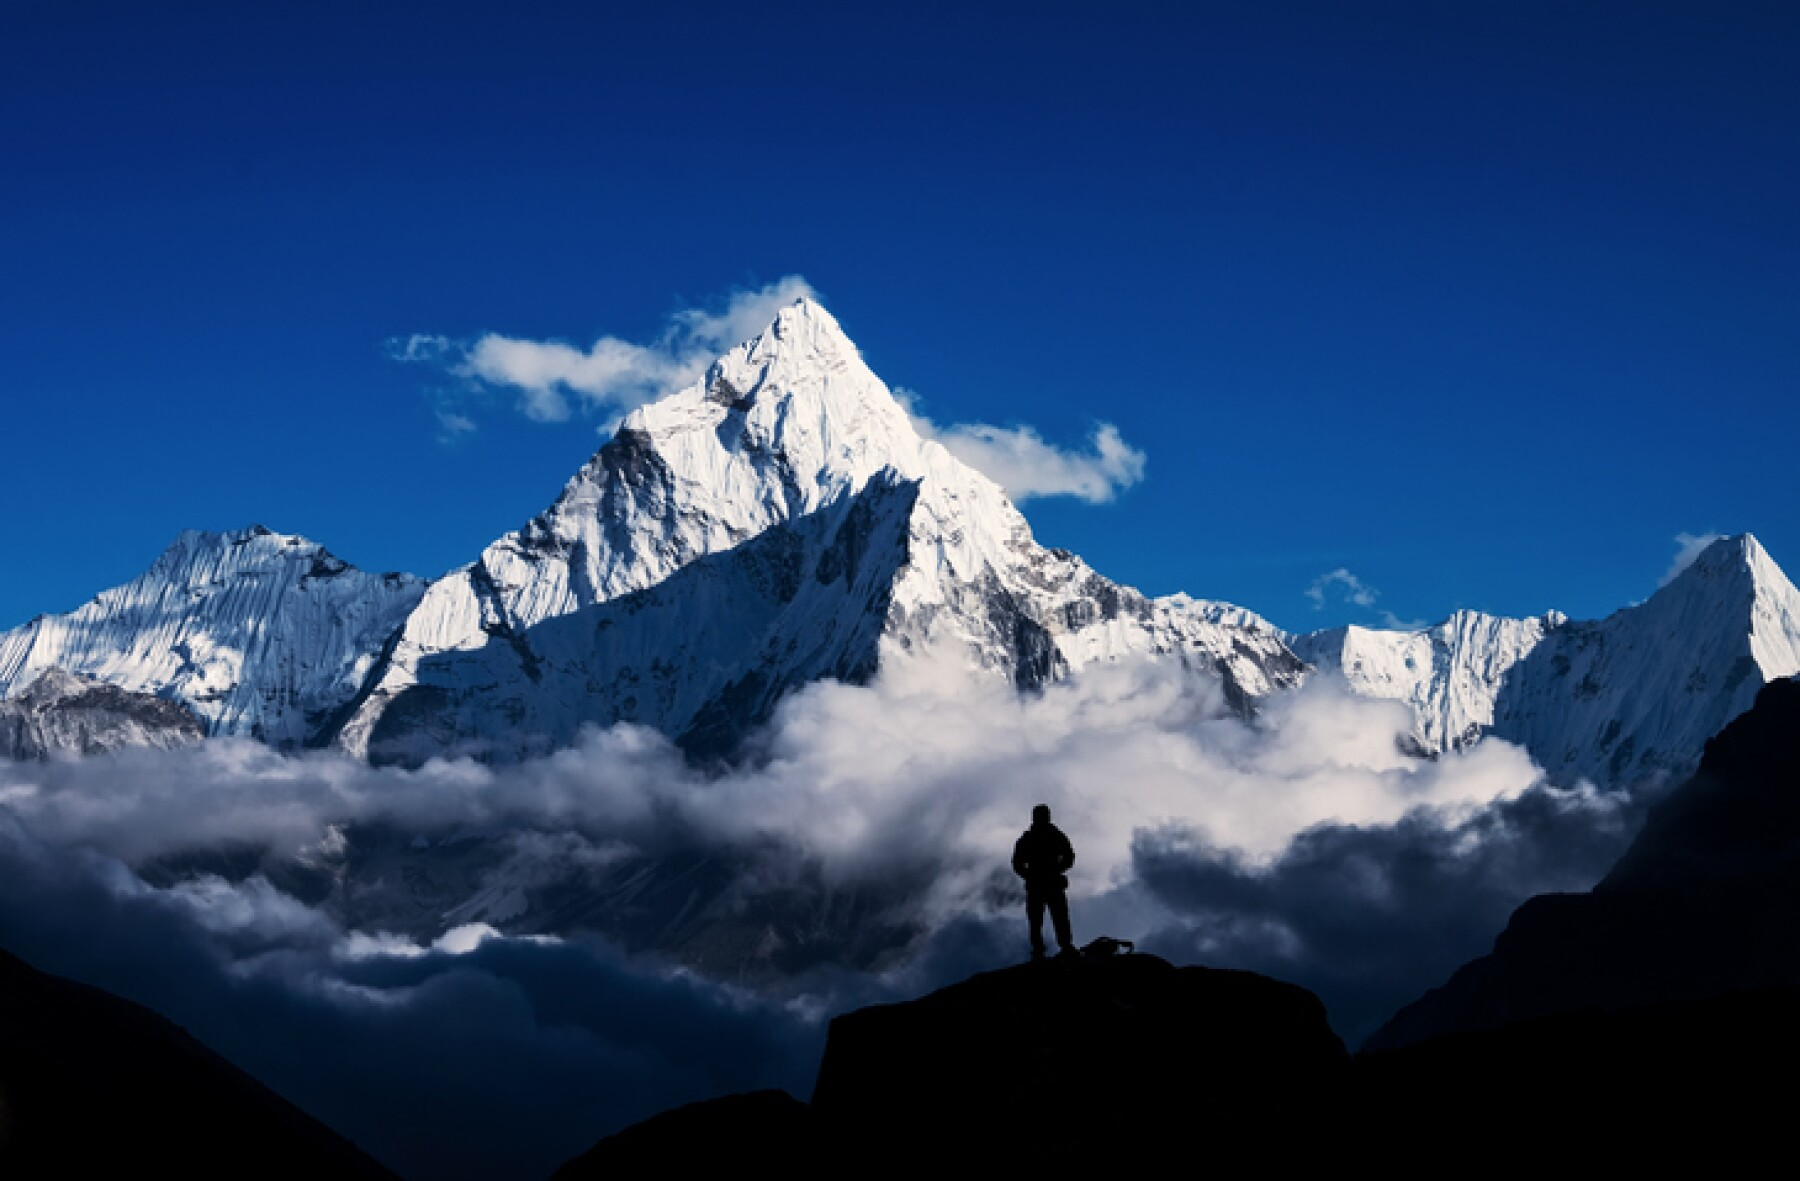 Man hiking silhouette in Mount Everest,Himalayan